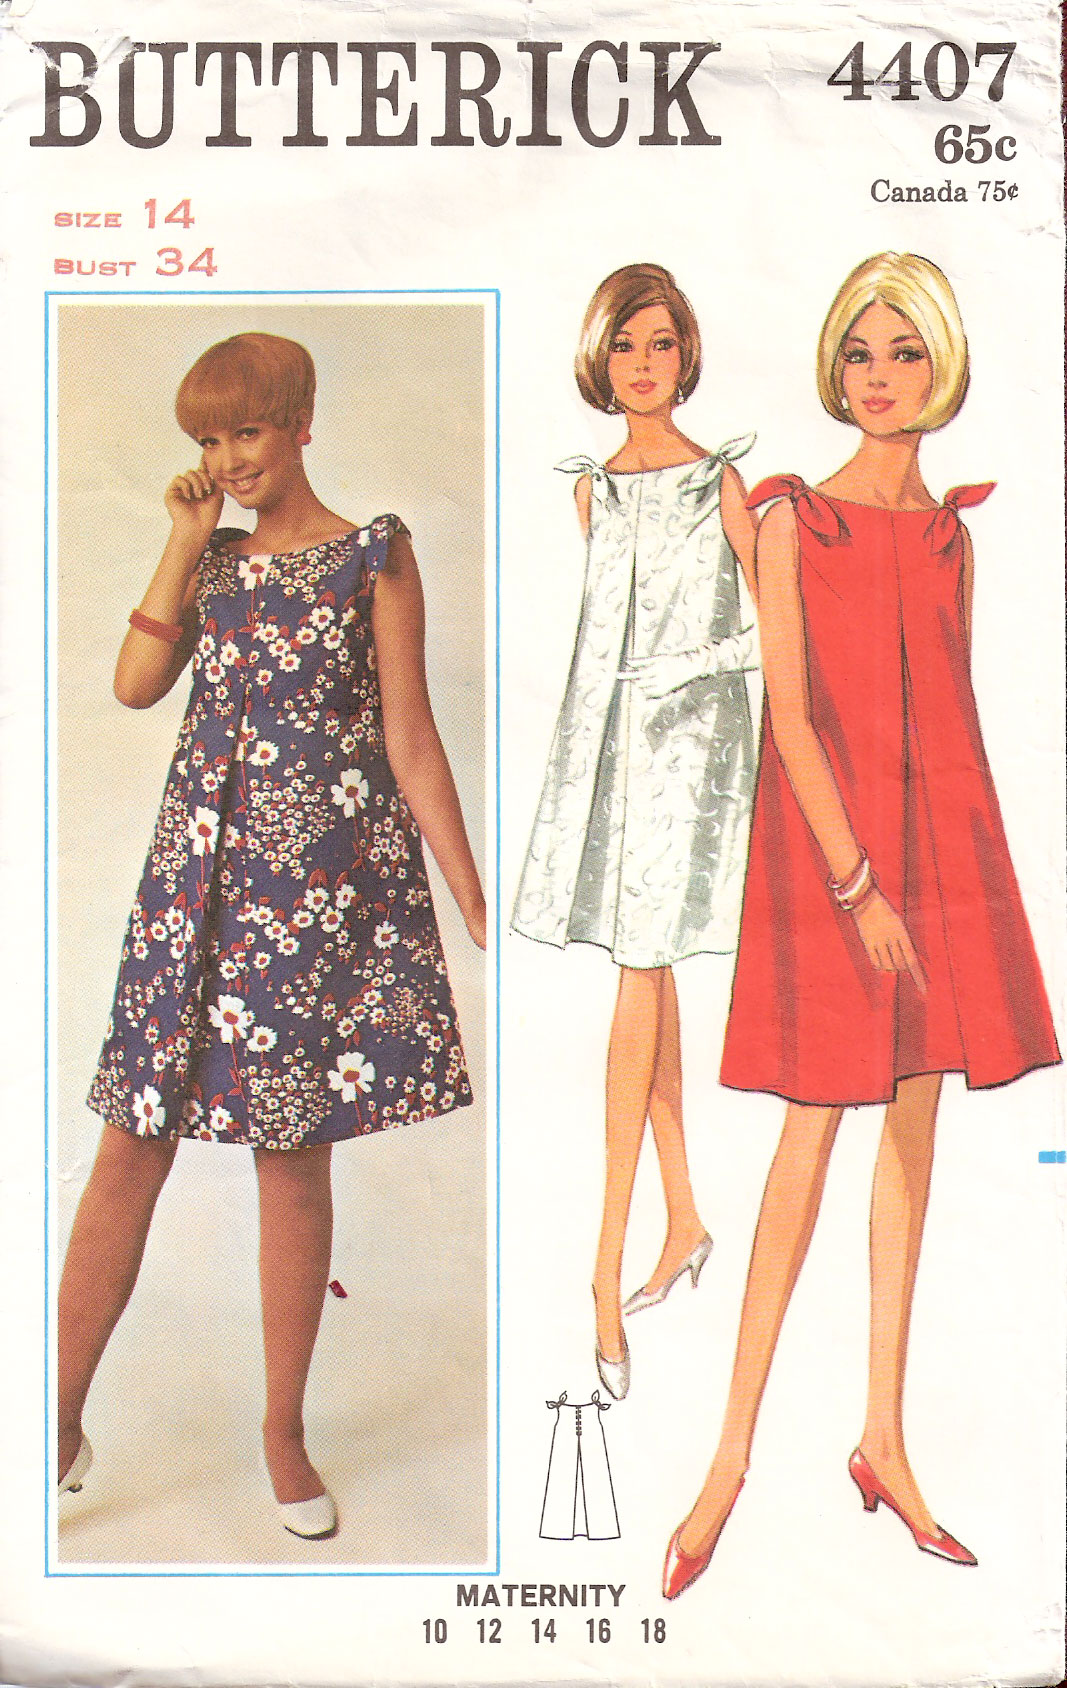 Butterick 4407 vintage sewing patterns fandom powered by wikia ombrellifo Images